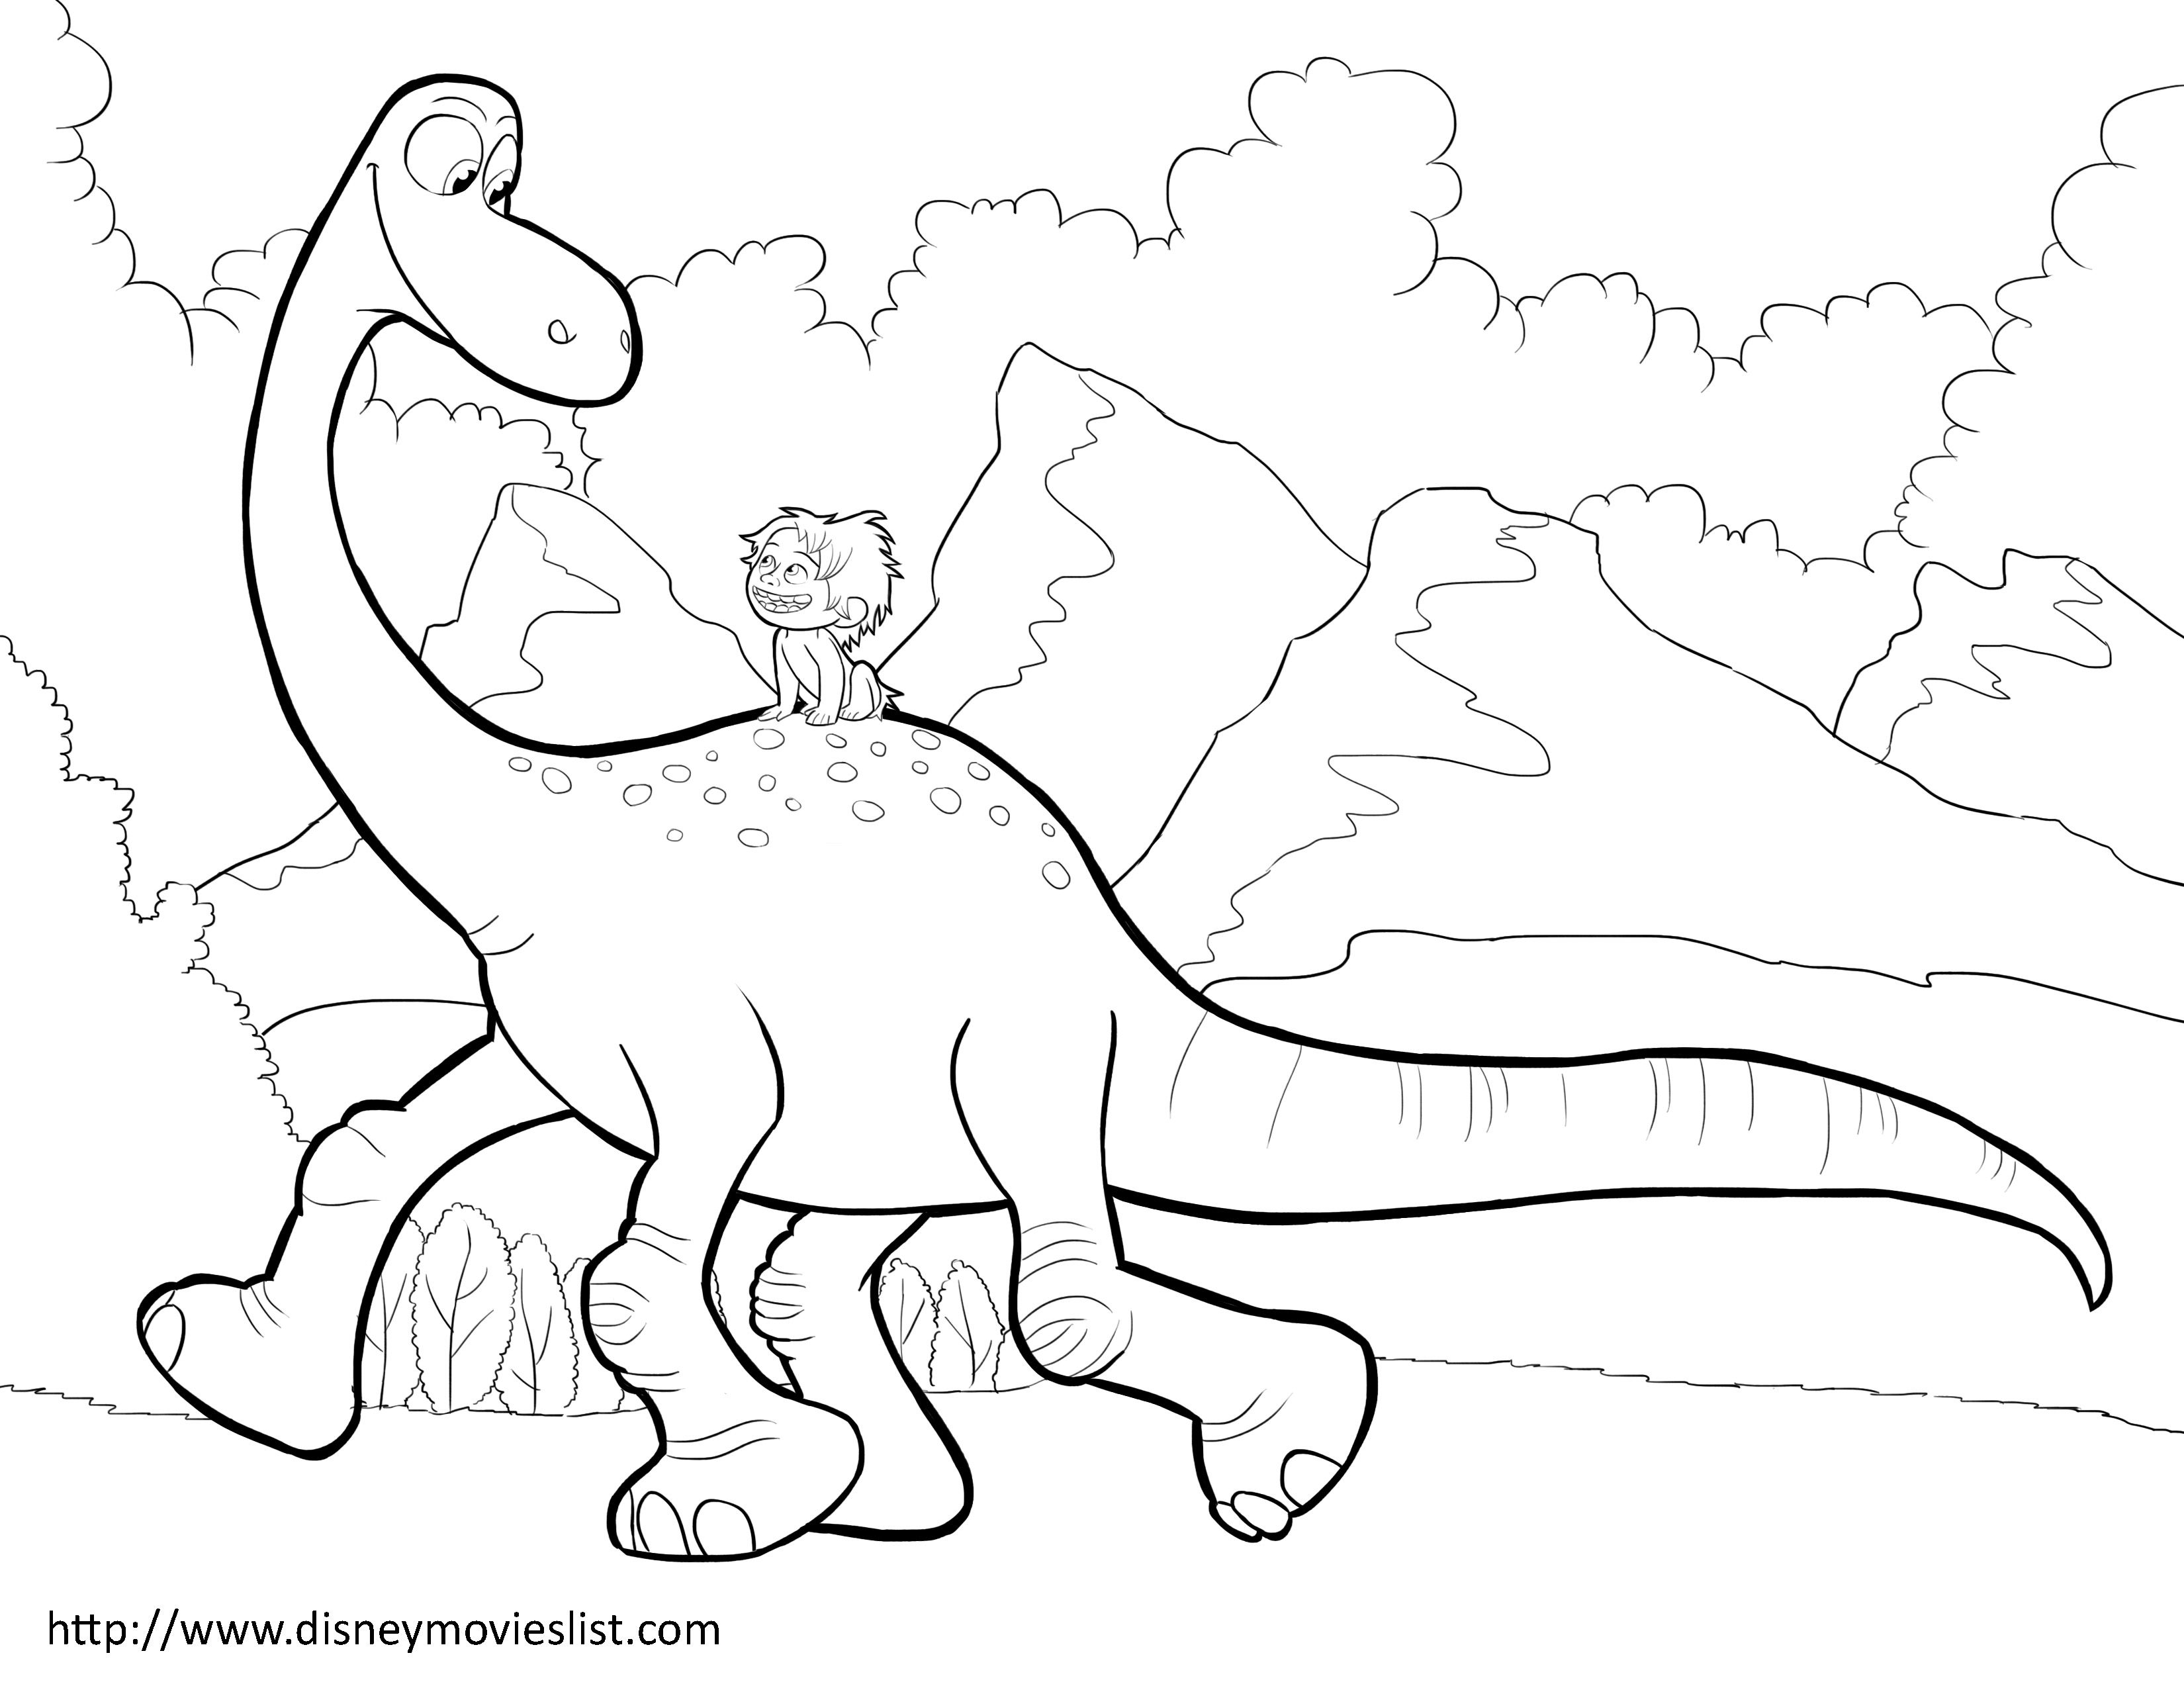 Ordinaire Disneyu0027s The Good Dinosaur Arlo And Spot Coloring Page